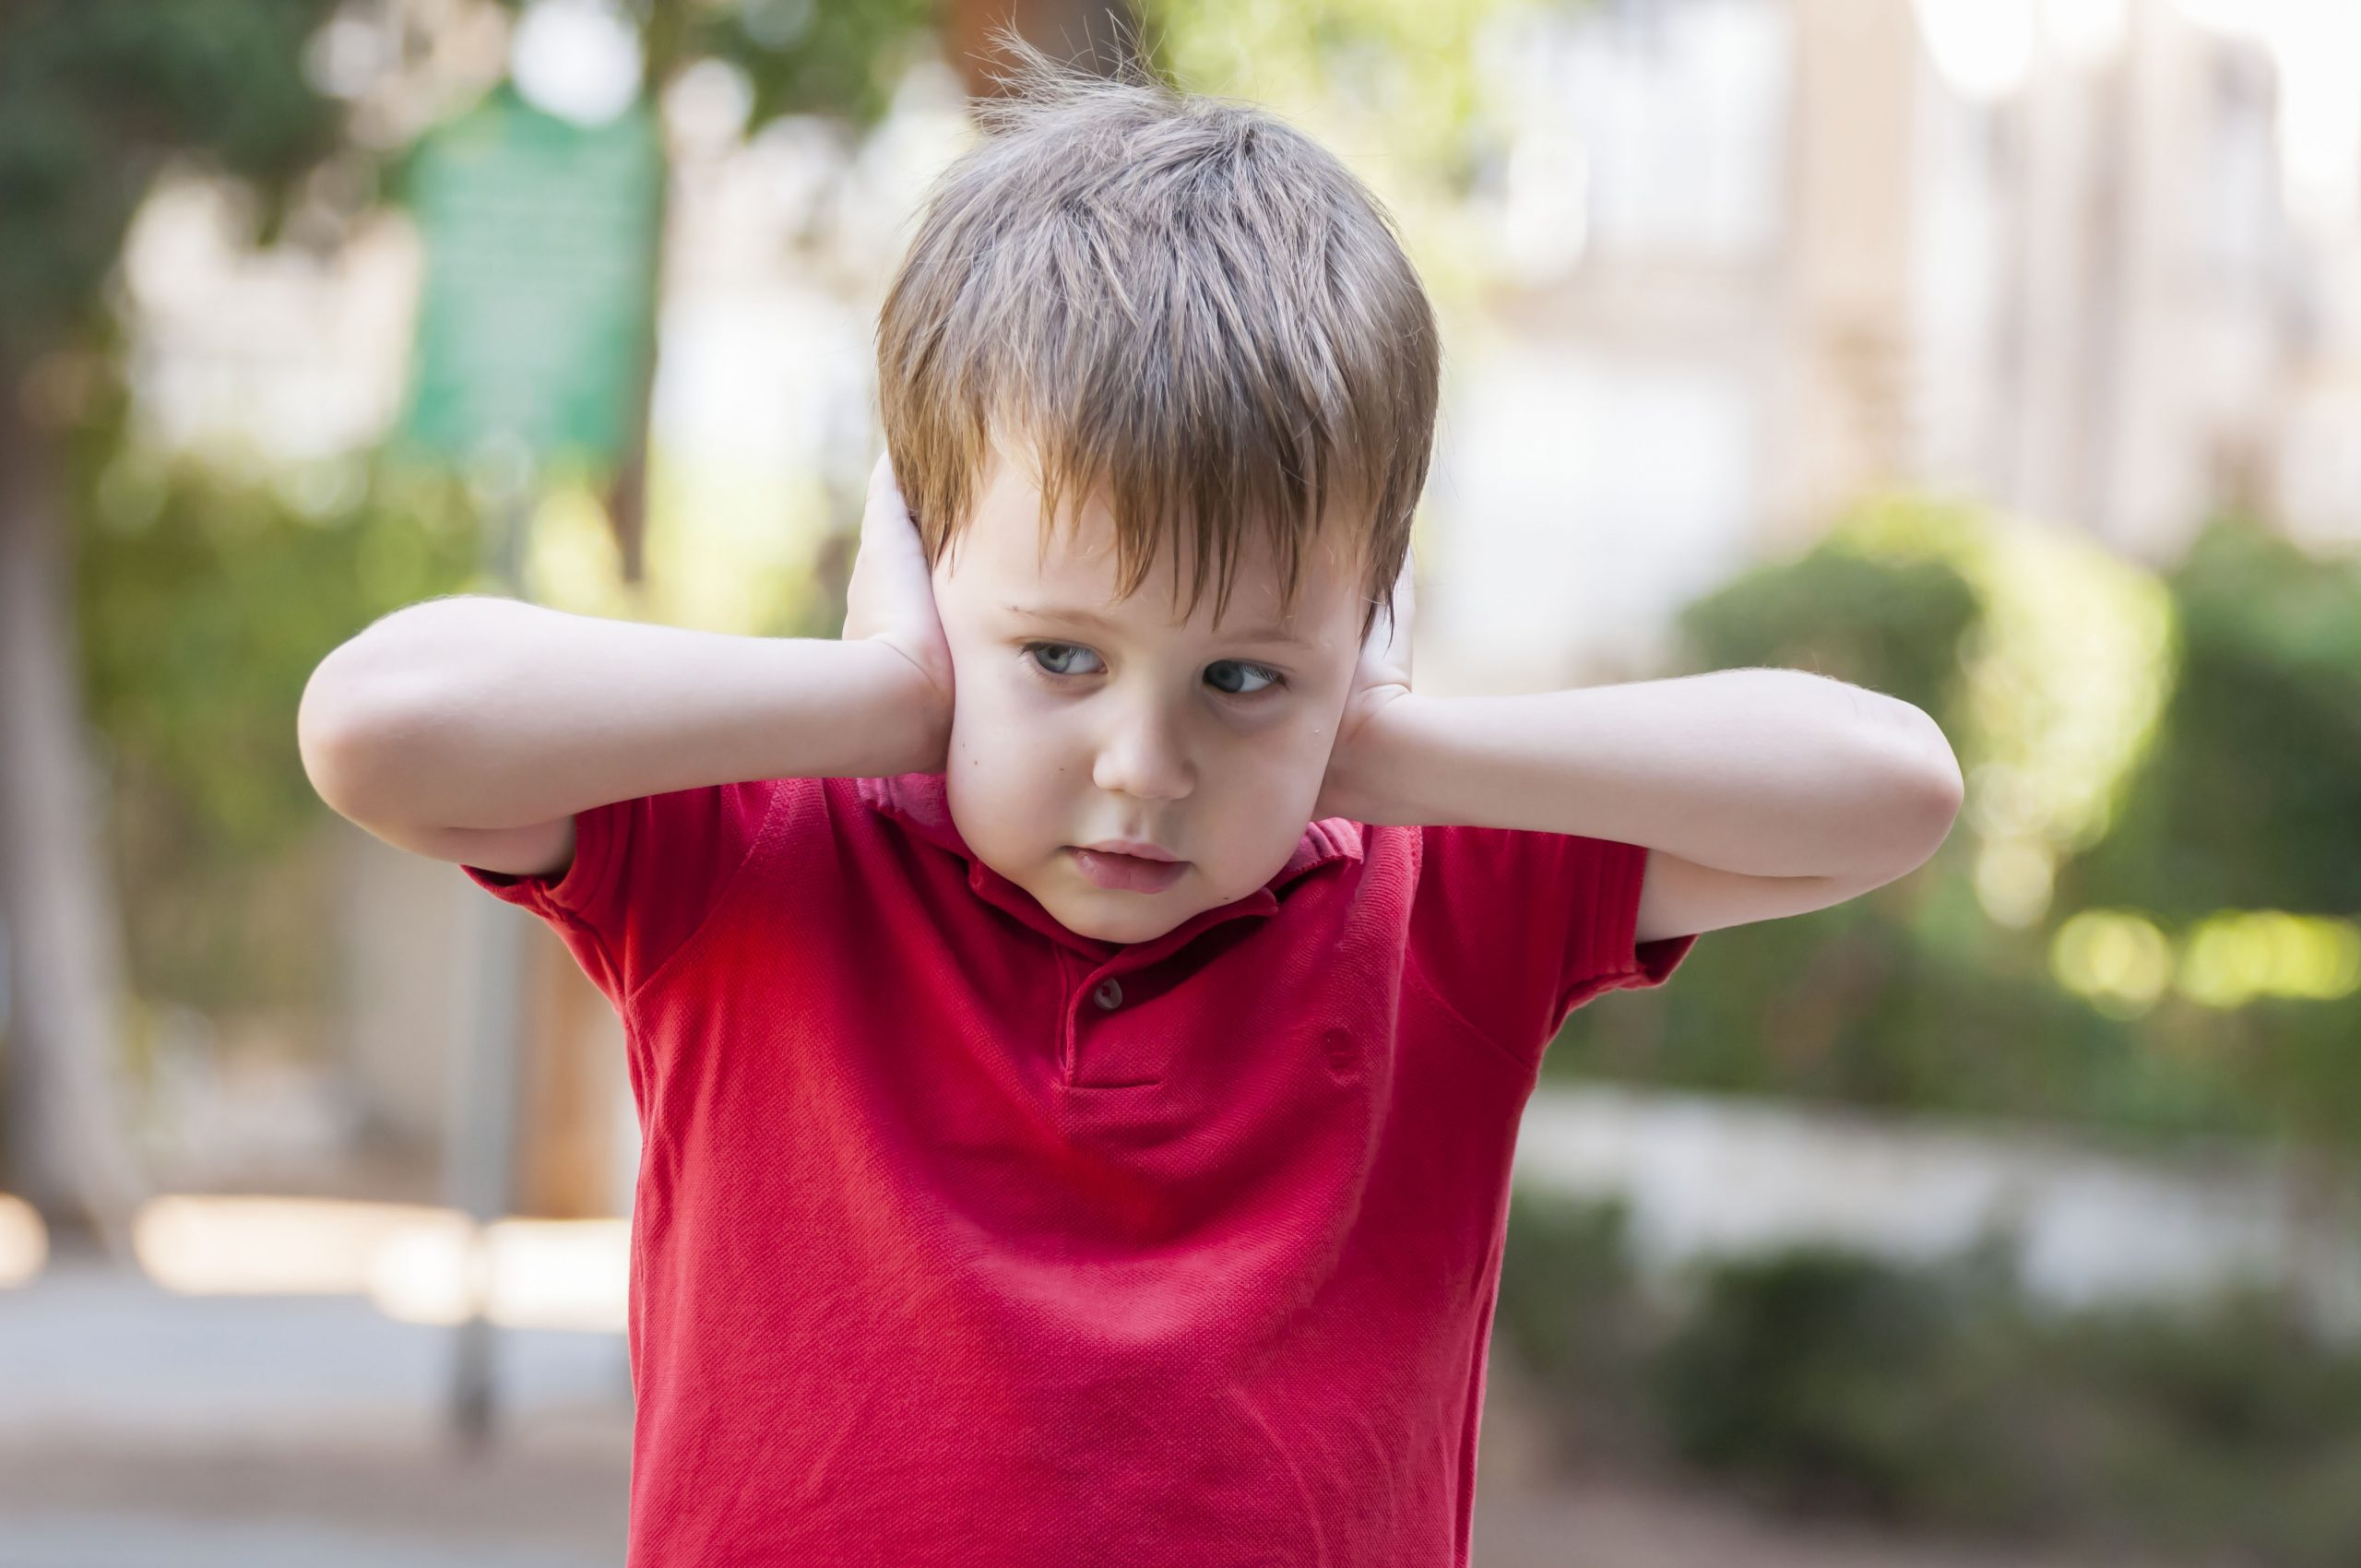 How to help young children regulate their emotions and behaviours during the pandemic